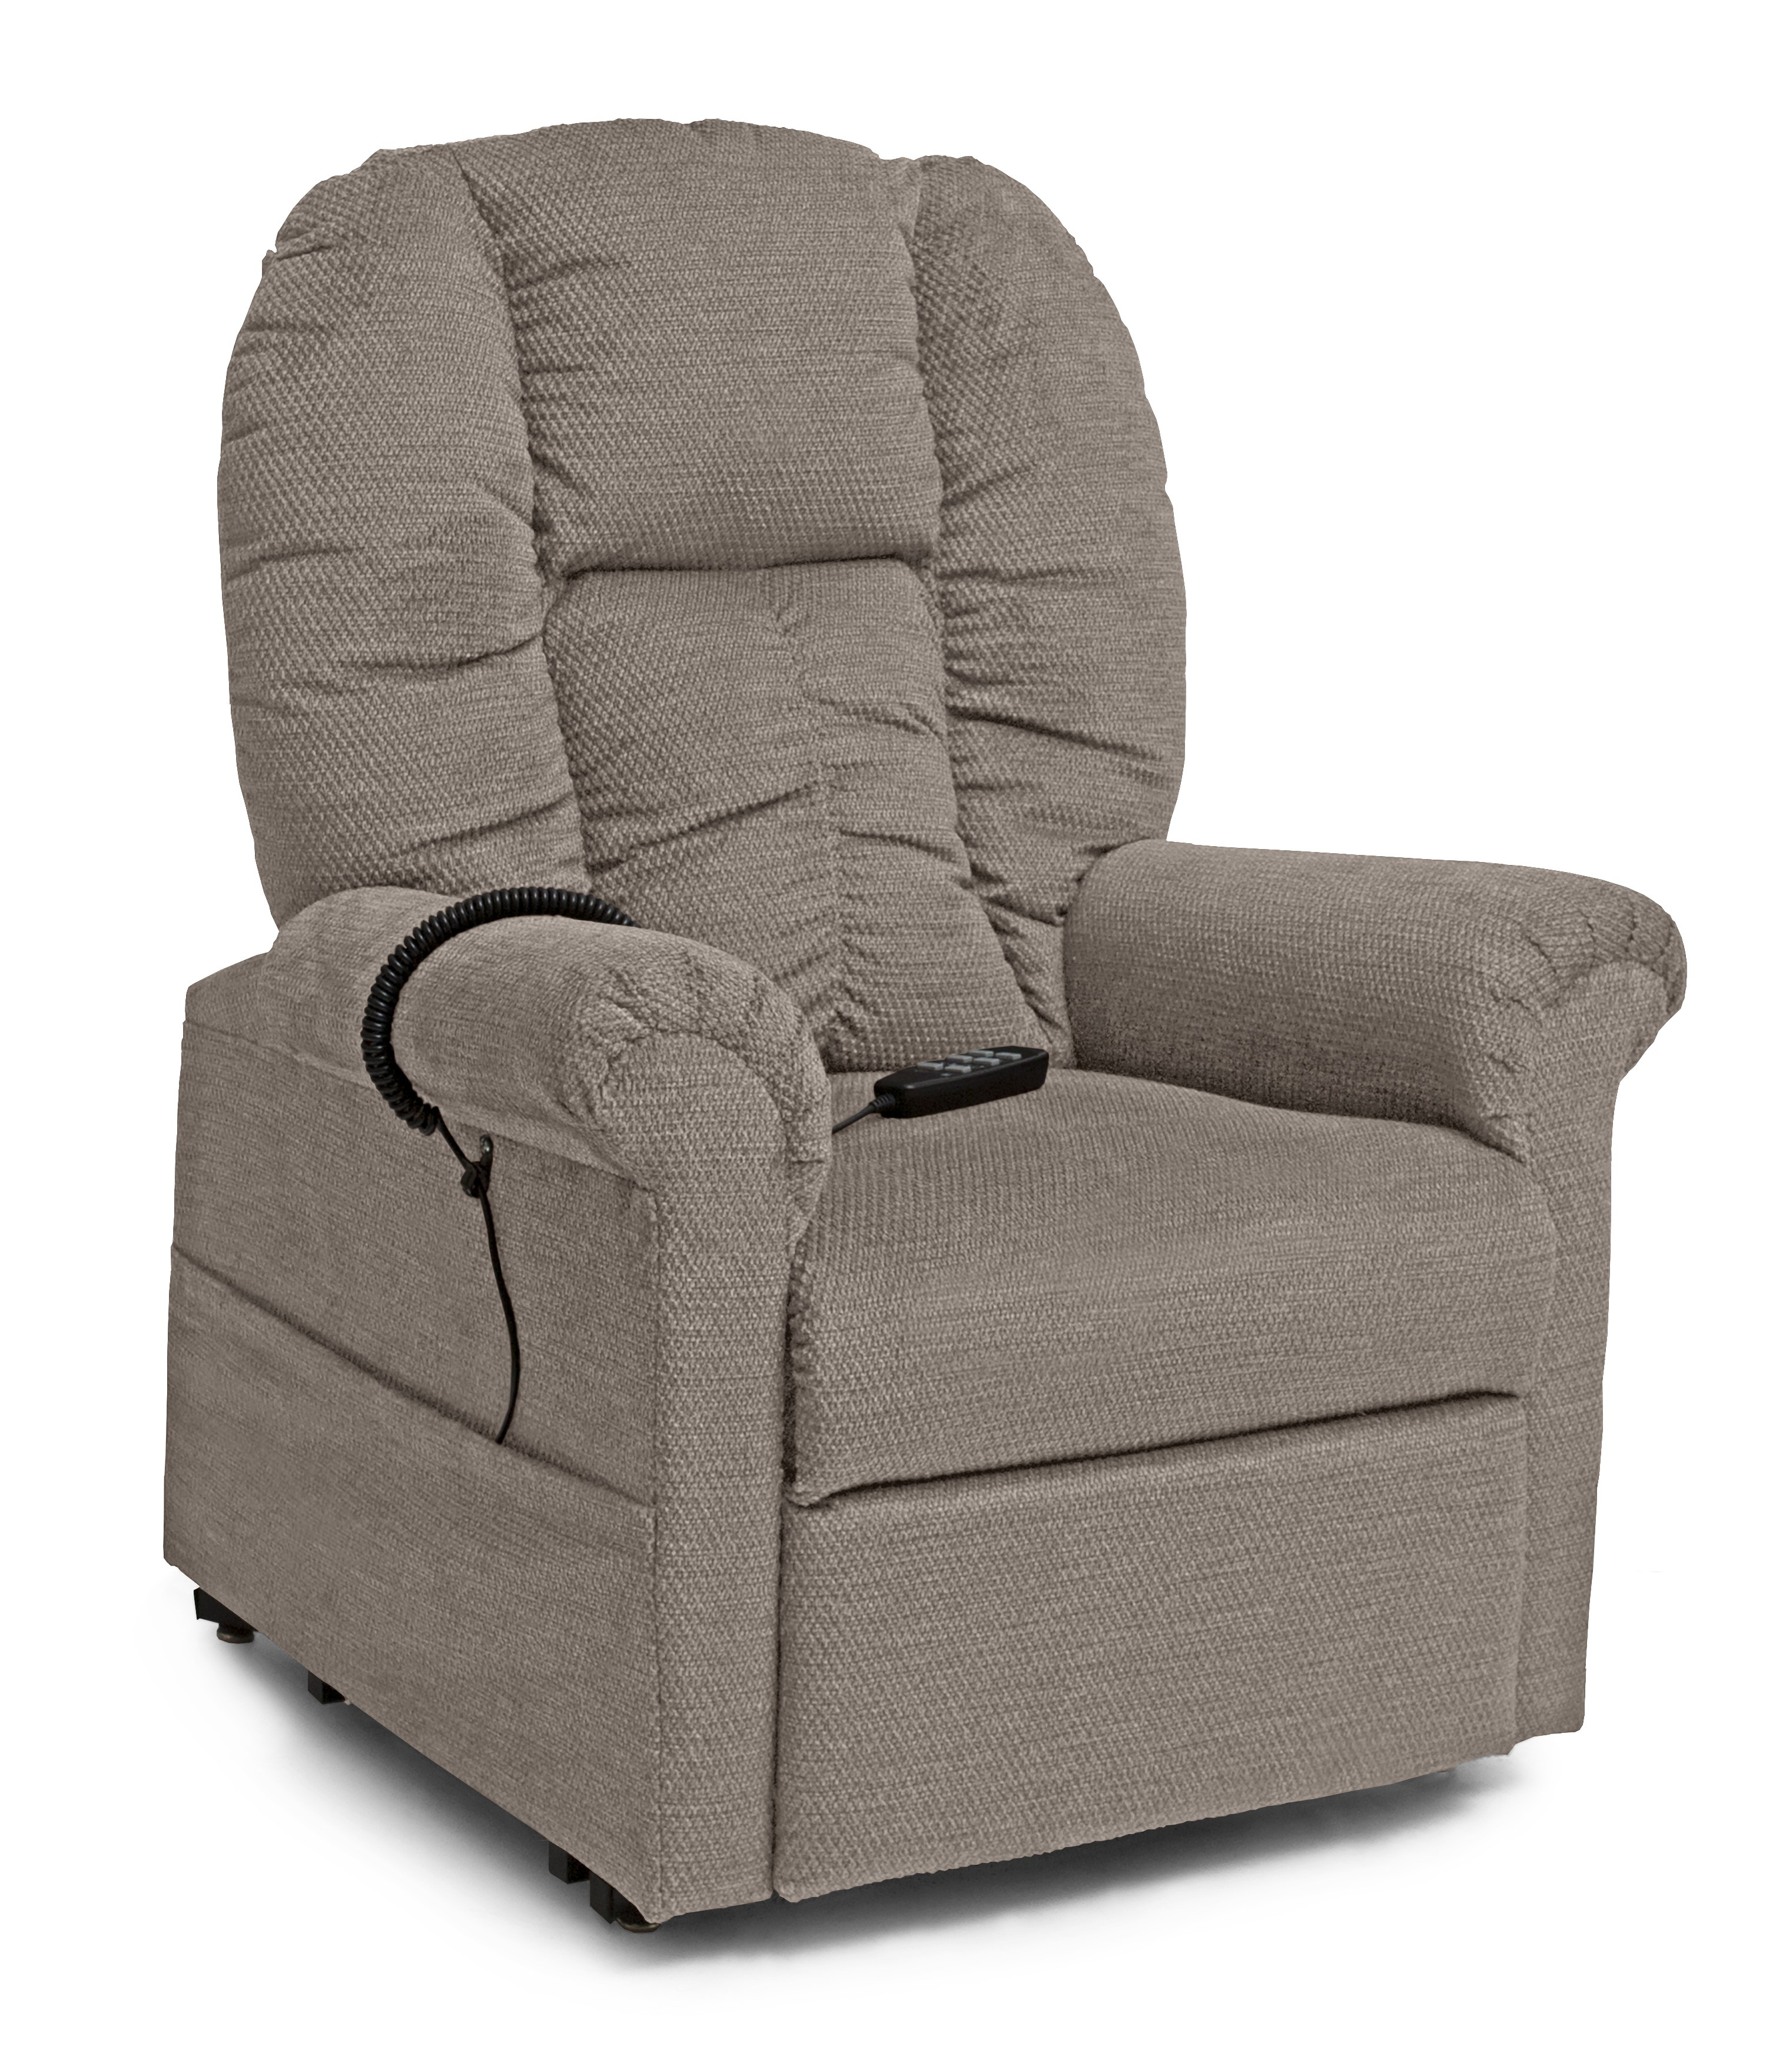 Infinity Chair Pride Infinity Collection Lift Chair Pillow Back Mccann